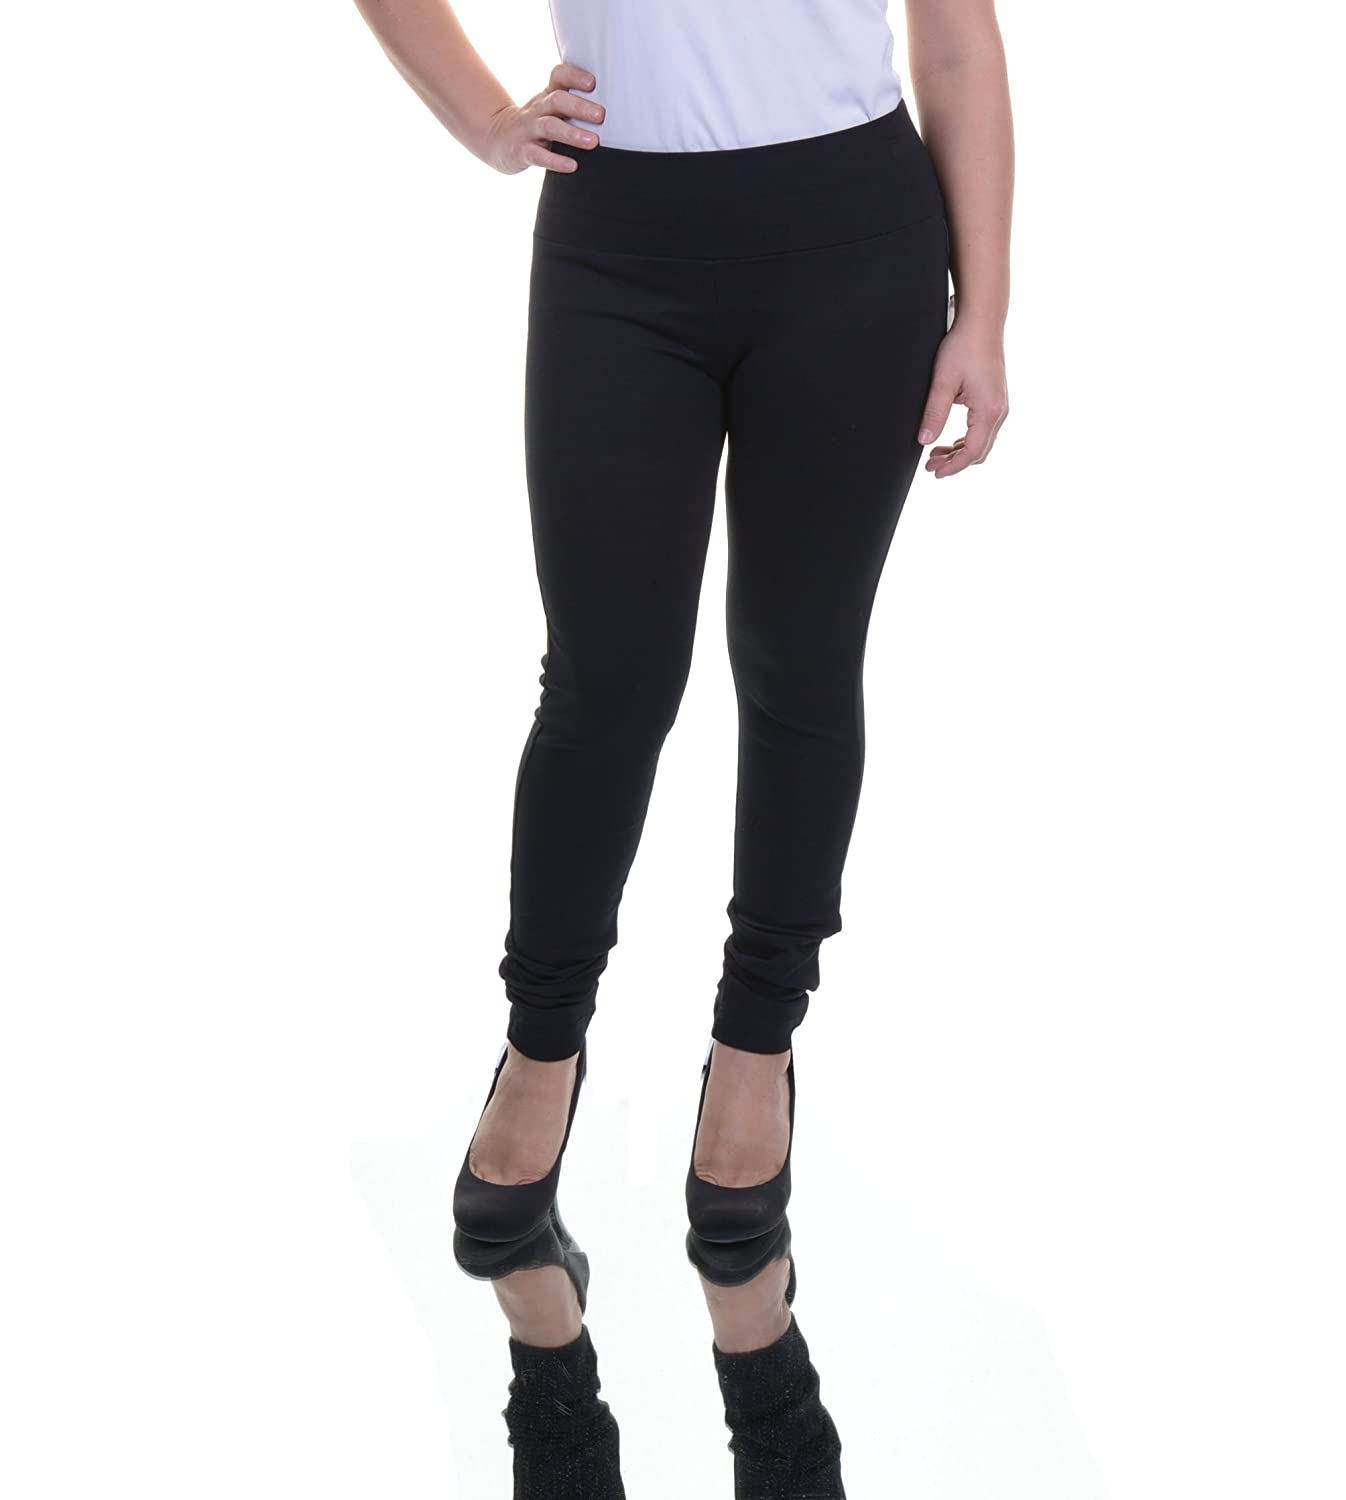 INC International Concepts Women's Pull-On Skinny Ponte Pants